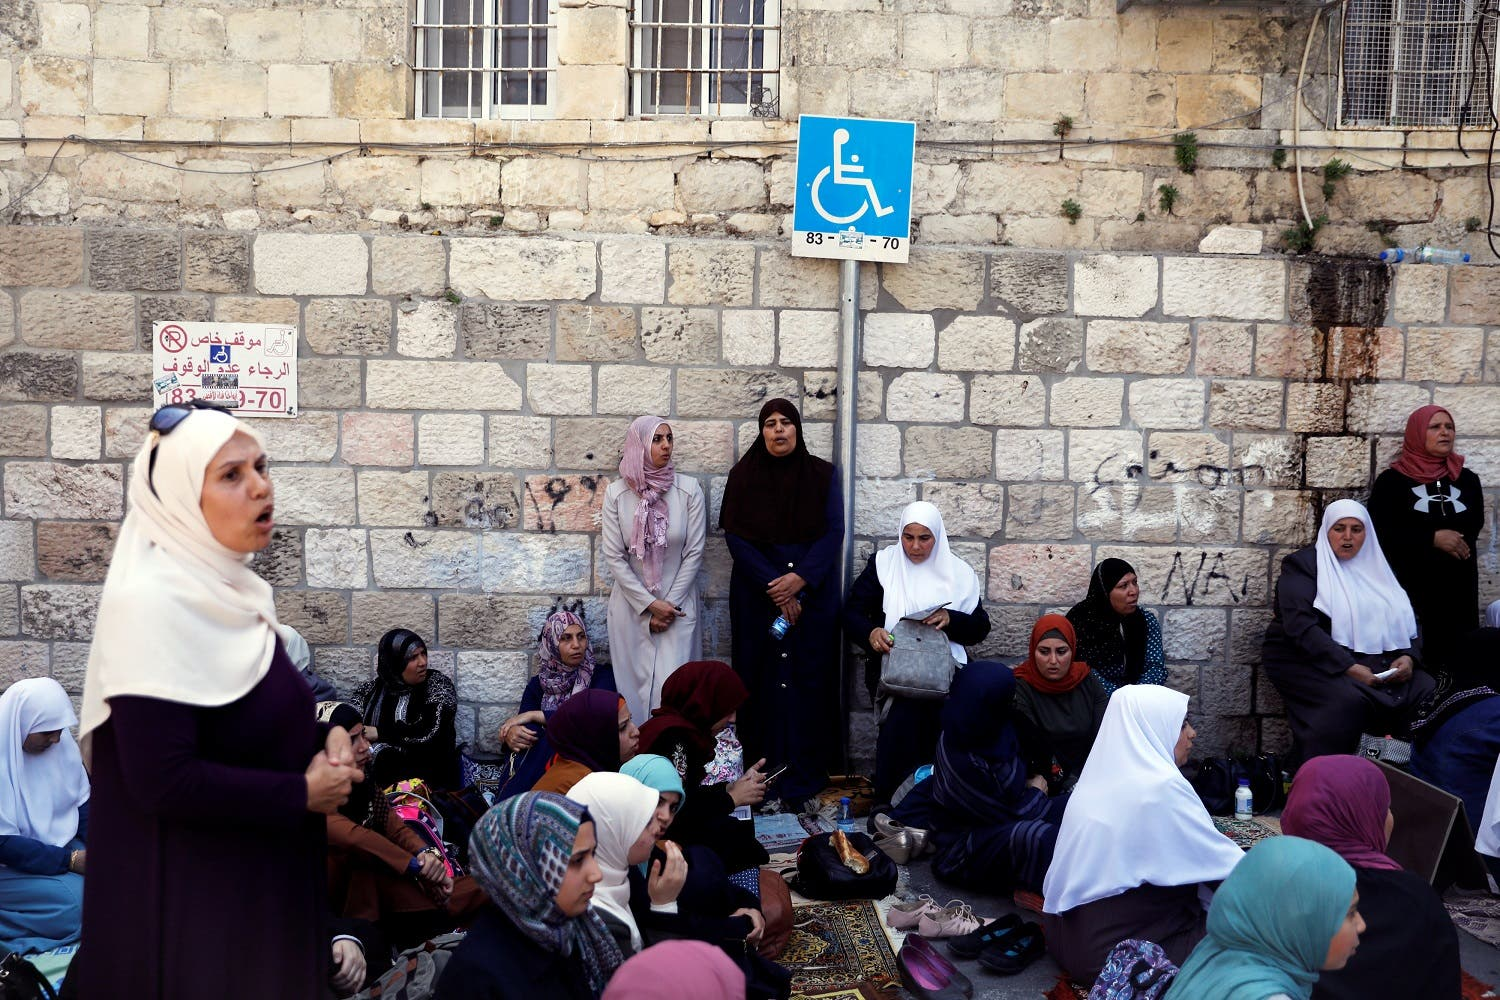 Palestinian women shout slogans as they sit outside the compound in Jerusalem's Old City on July 25, 2017. (Reuters)